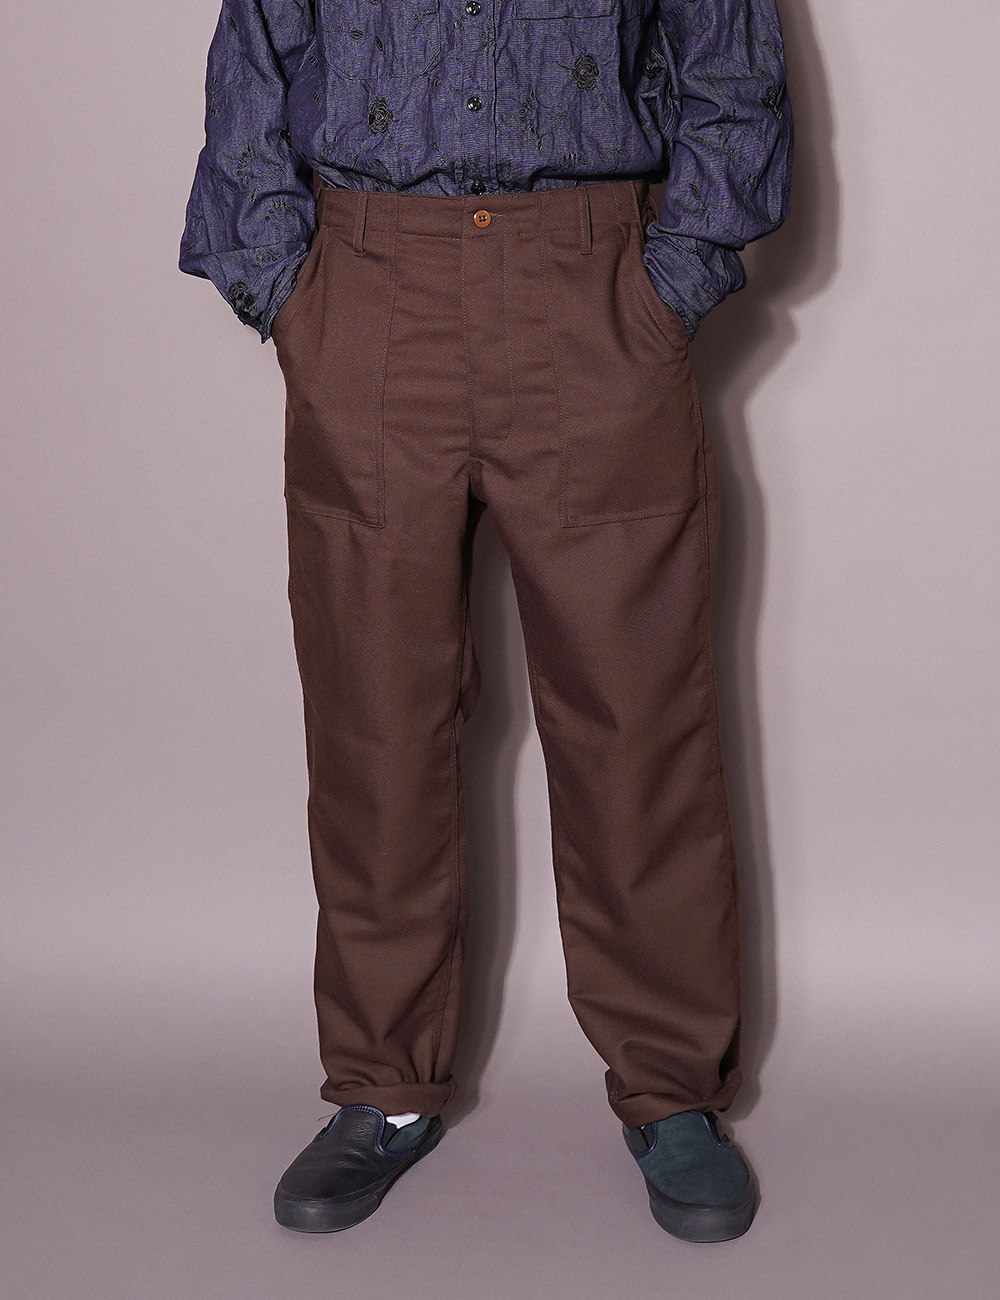 Engineered Garments WORKDAY : FATIGUE PANTS (BROWN)